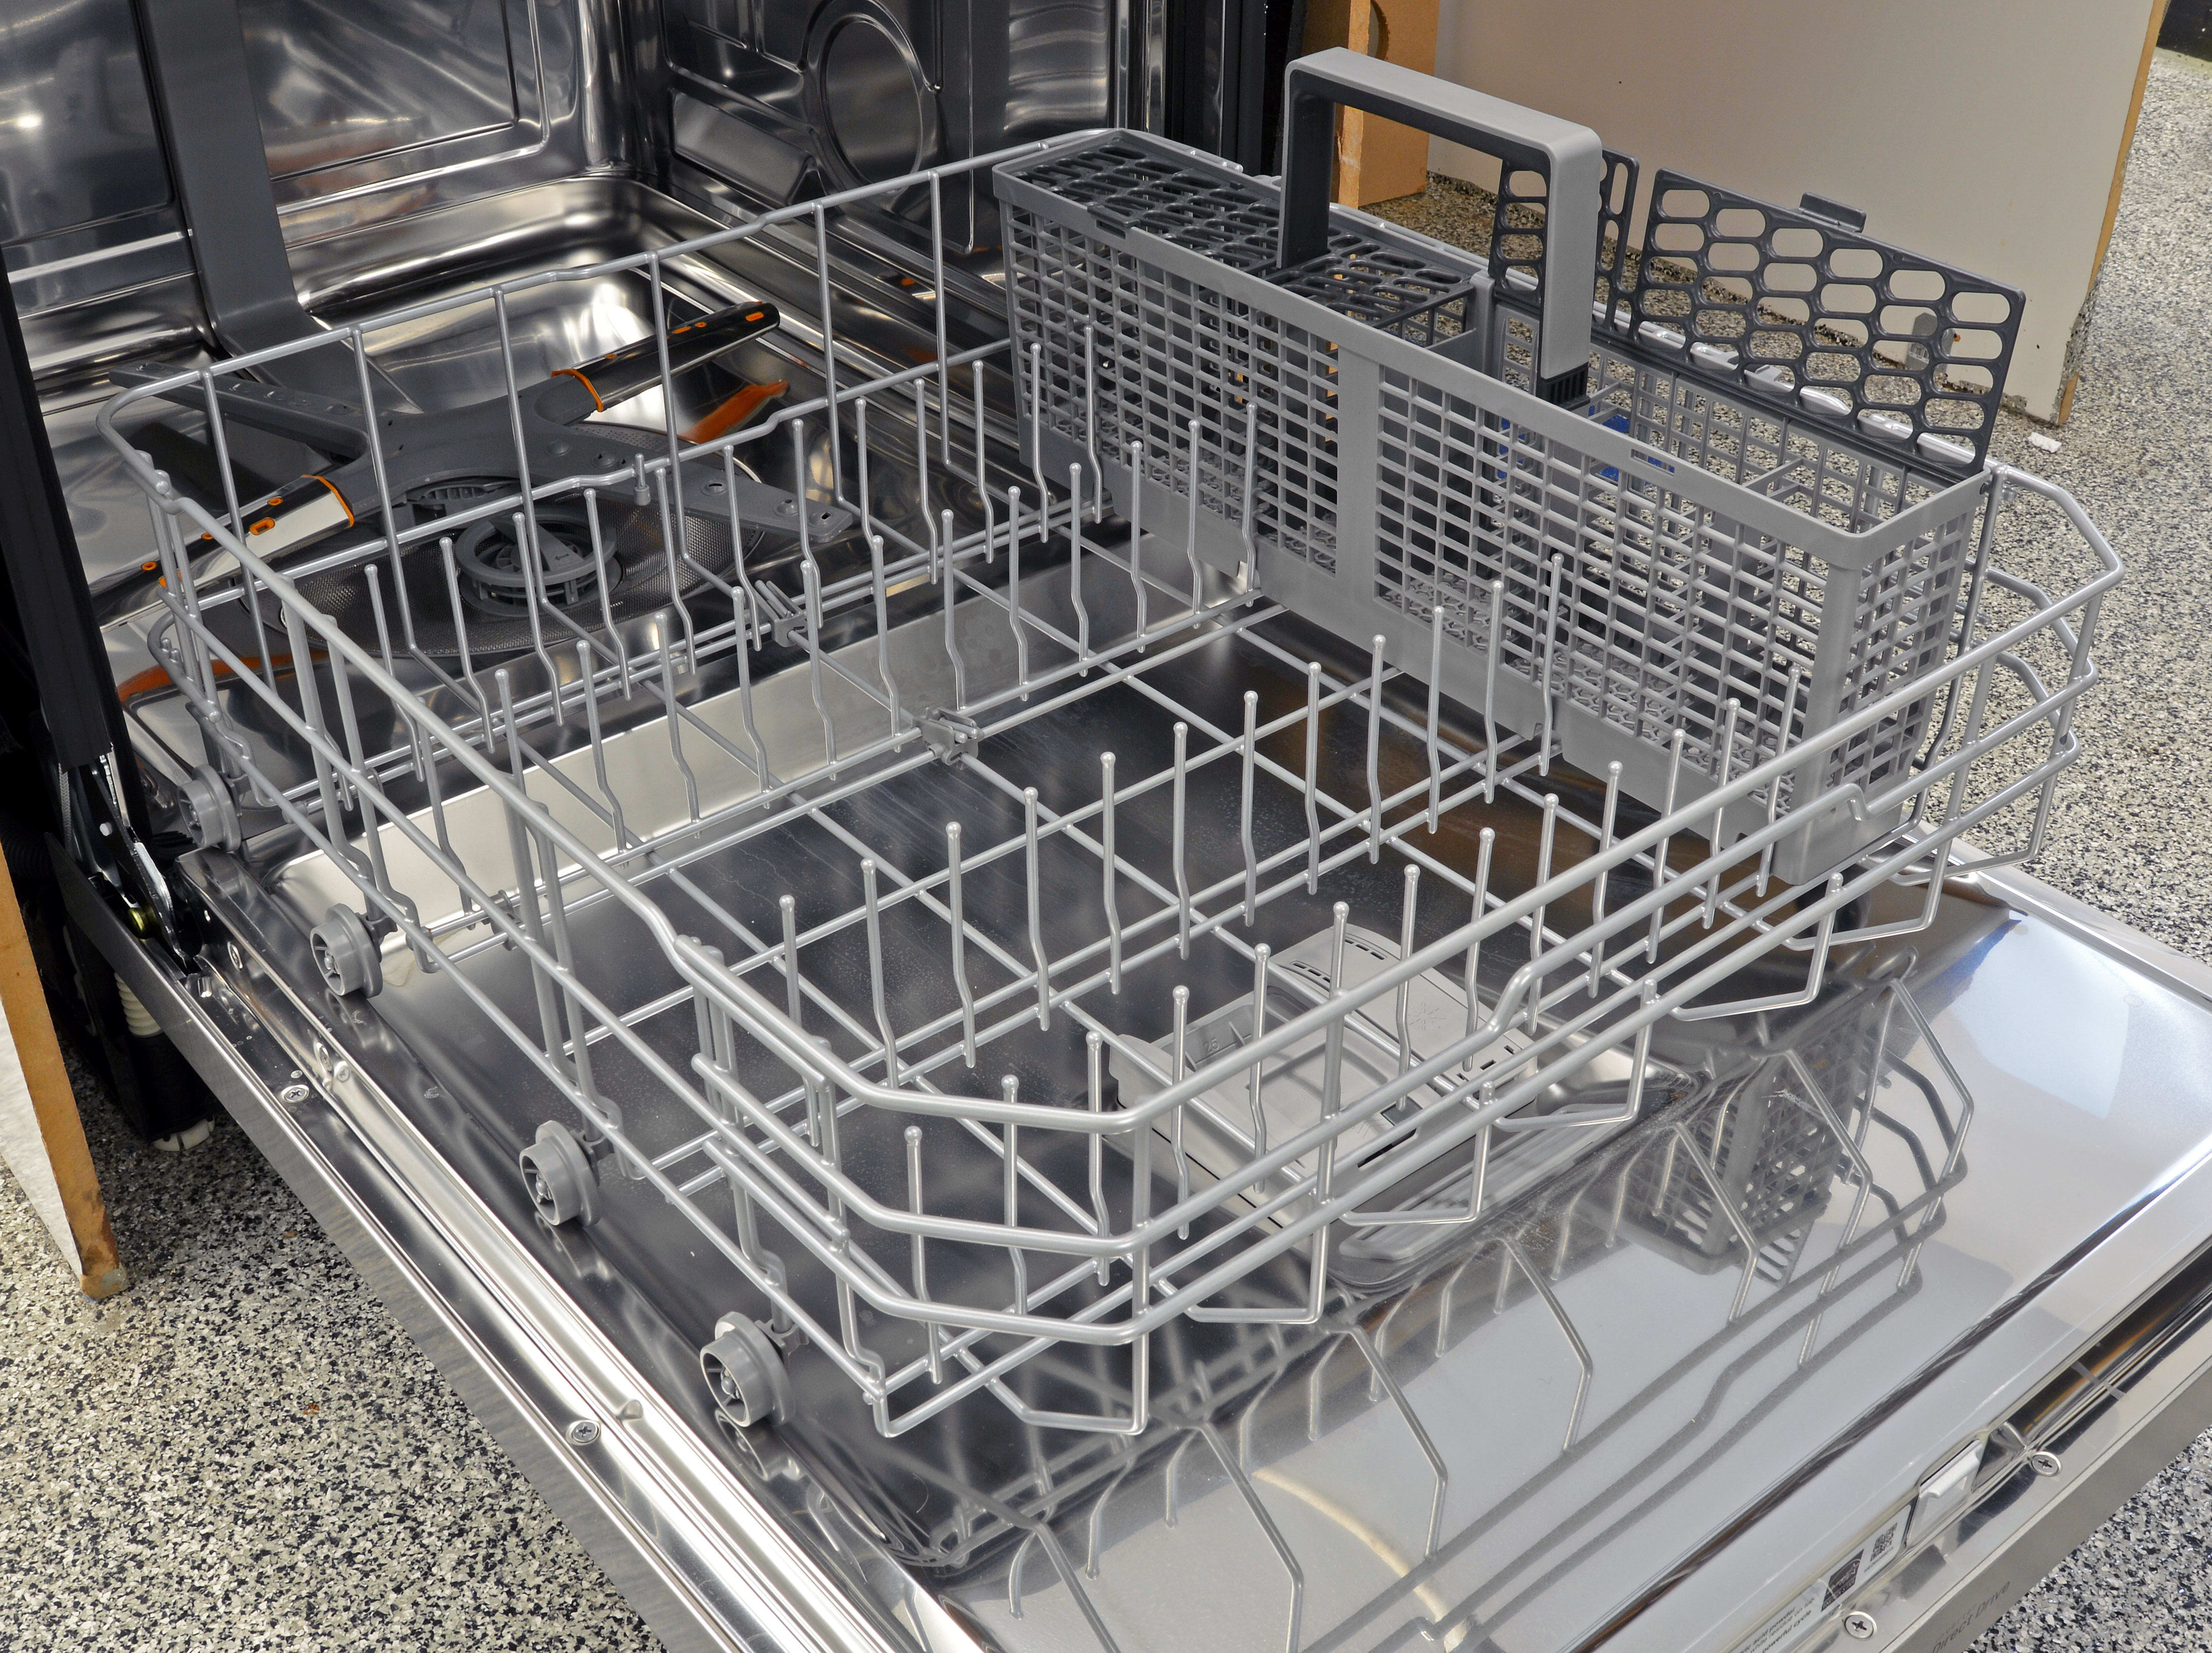 The lower rack doesn't offer any versatility in its layout (and the cutlery basket takes up too much space in our opinion) but it handles well and feels sturdy.